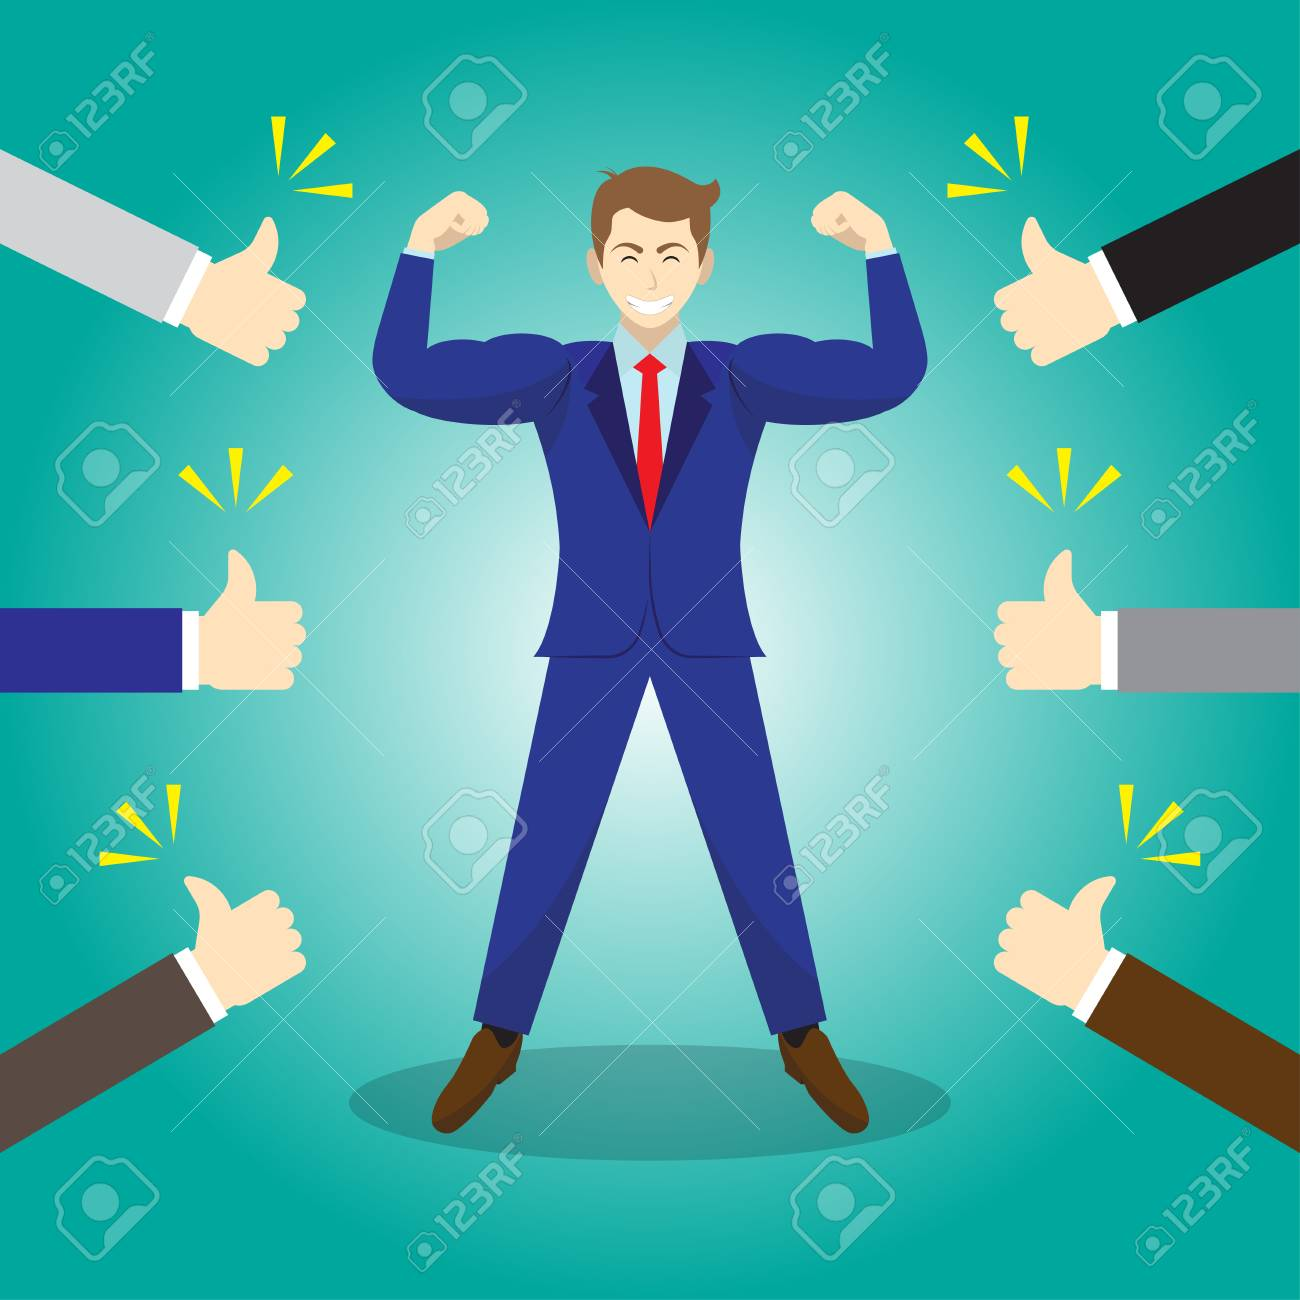 Vector Illustration Business Concept As A Strong Businessman Is Standing And Thumbs Up From Others. He Is Proud Of Himself And He Is Admired, Praised, Respected, Cheered And Full Of Social Esteem. - 91317005